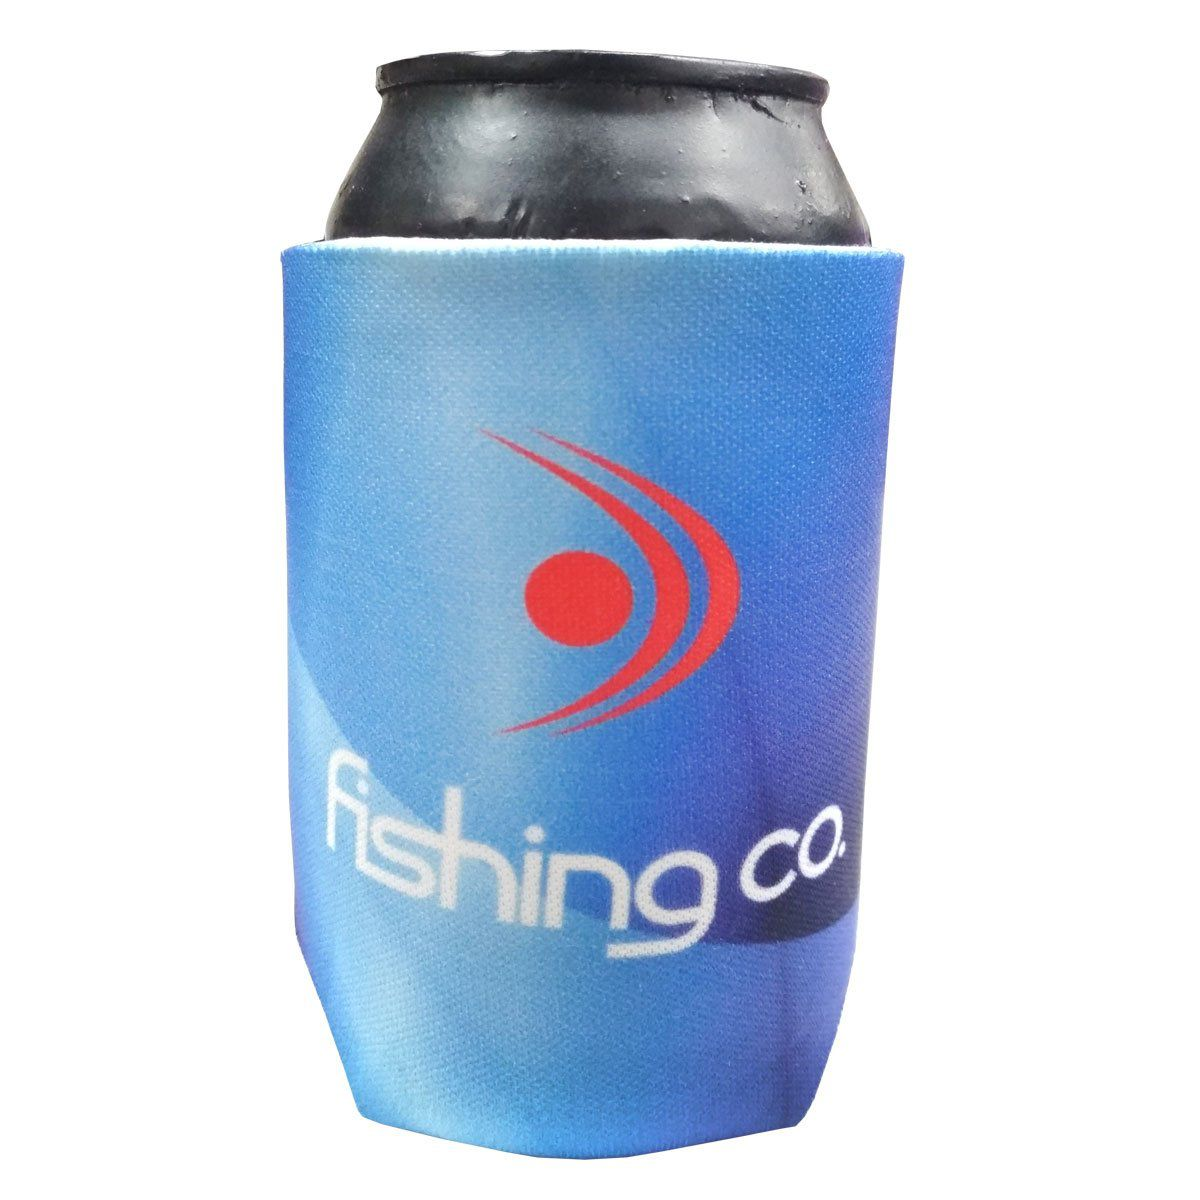 Porta Lata Fishing Co Azul Degrade